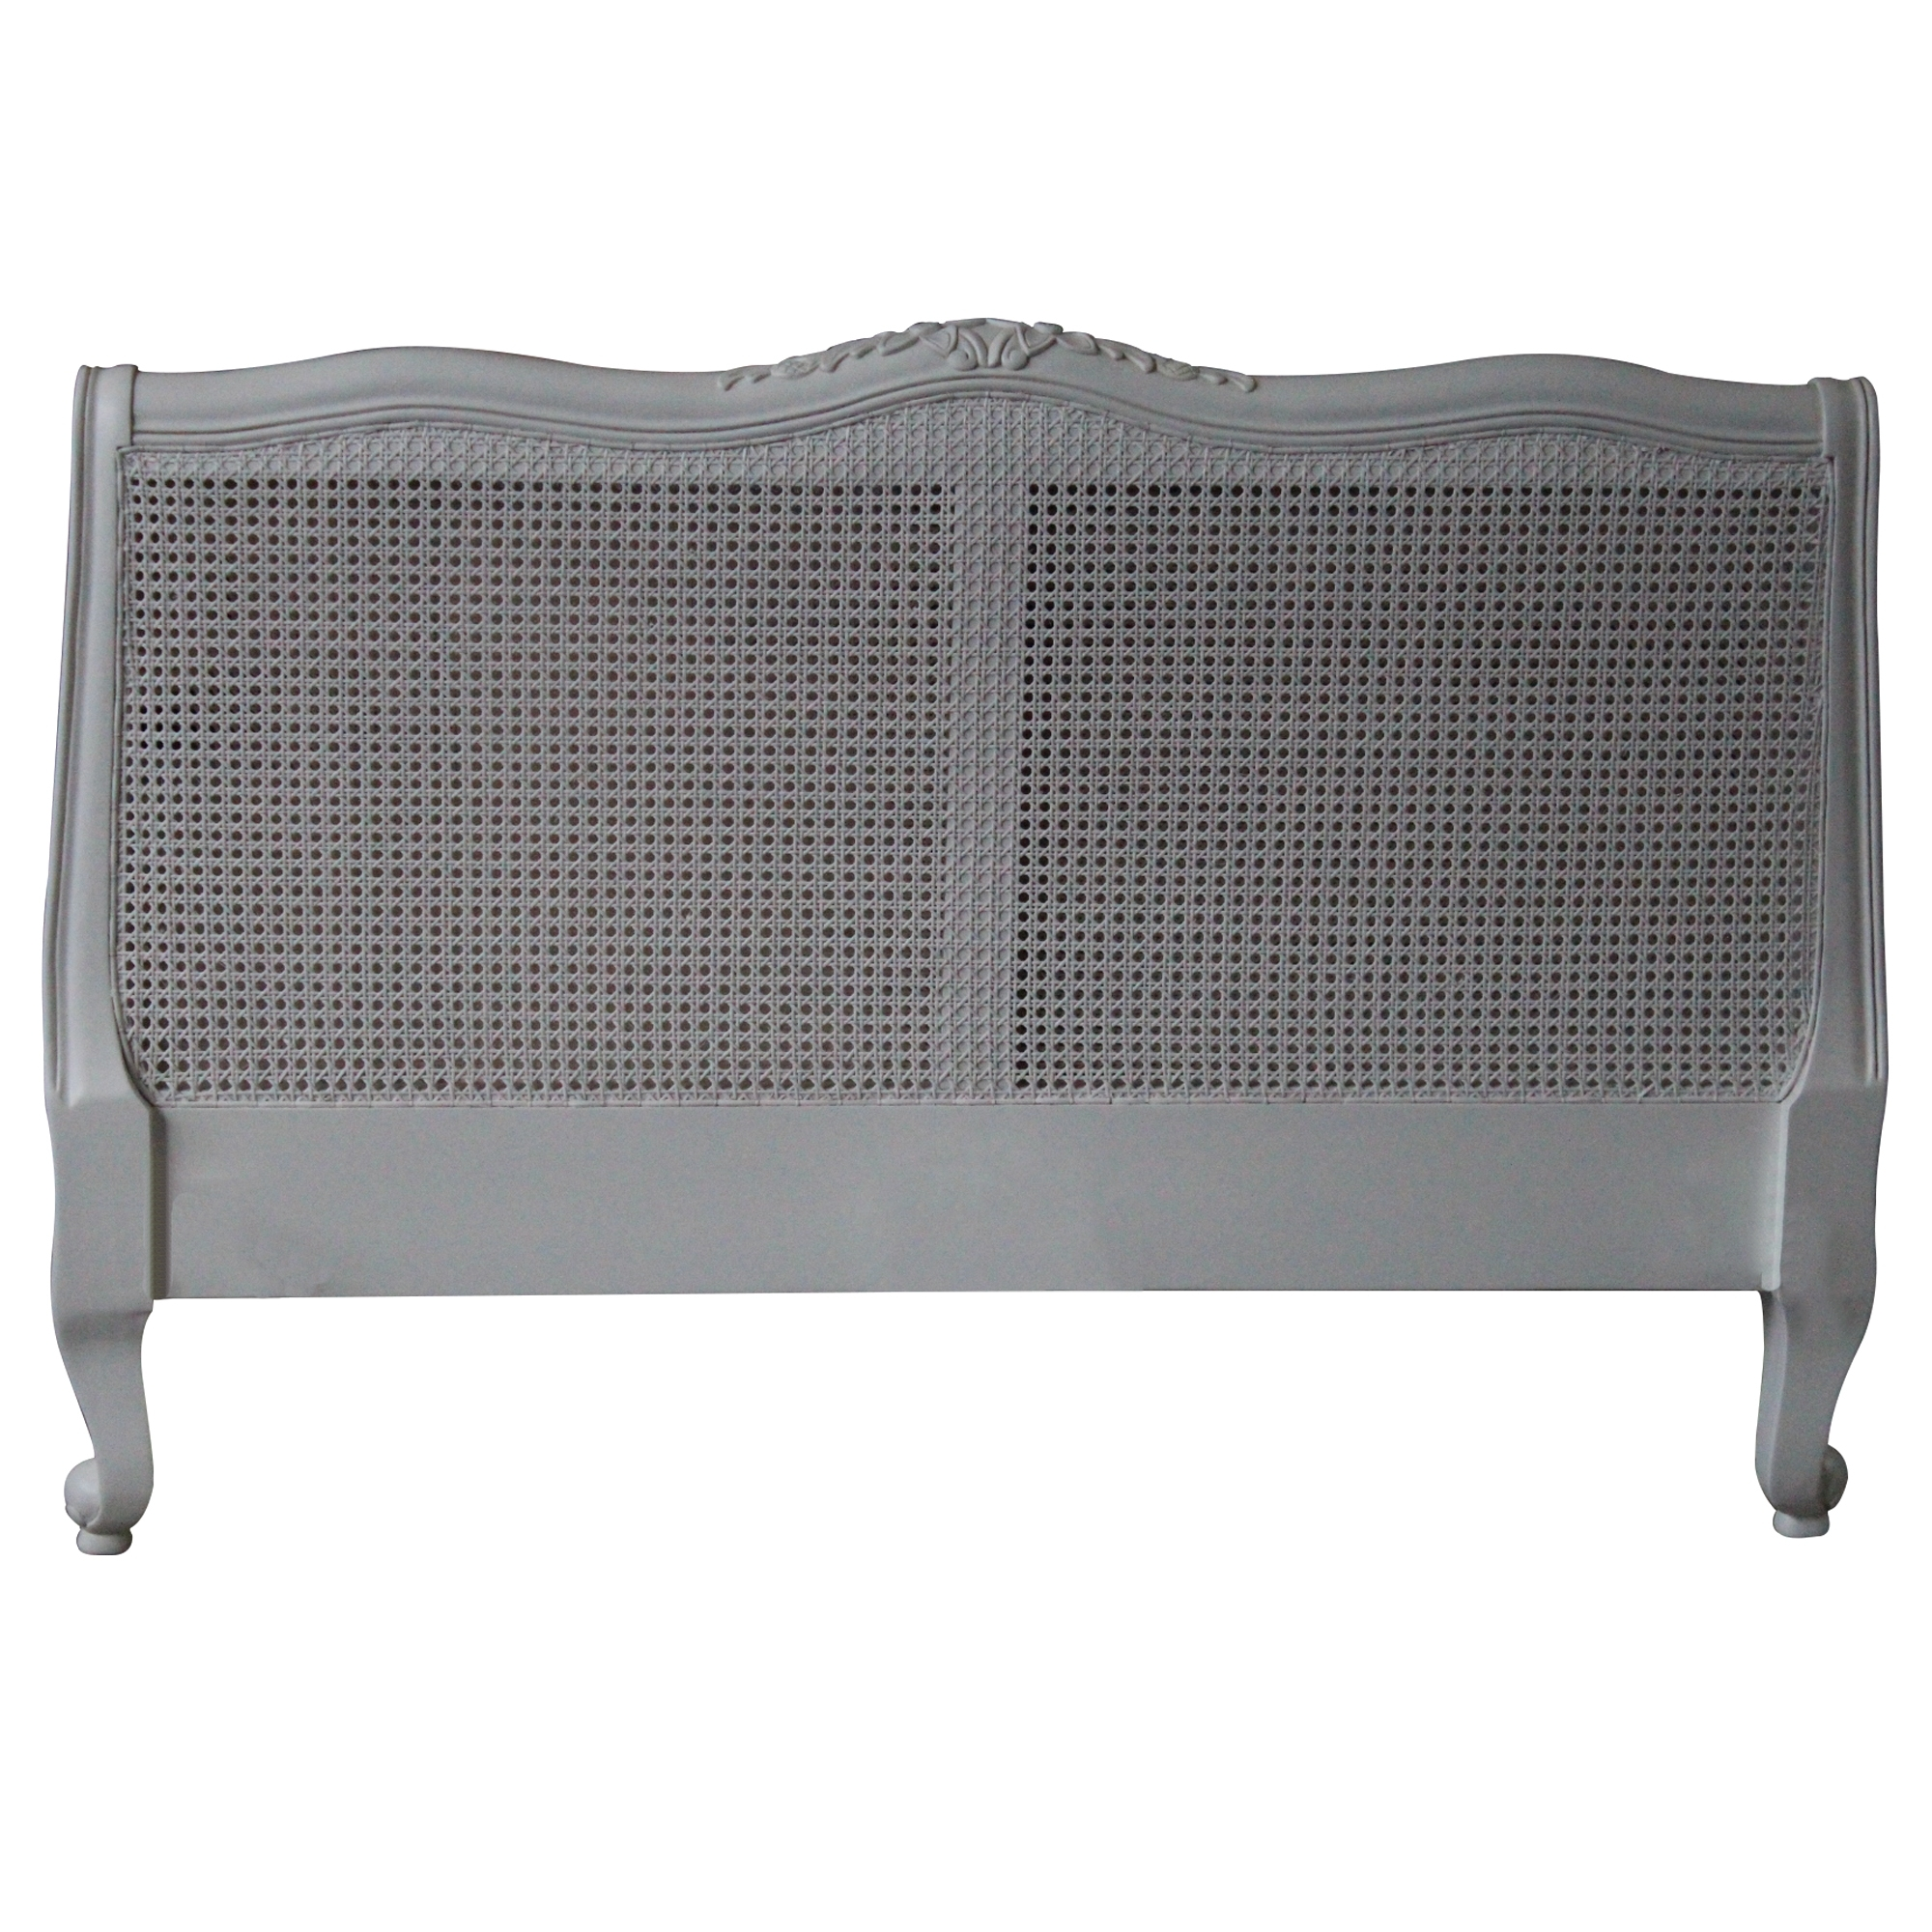 Louis Xv Rattan Antique French Headboard To Compliment Our Stunning Shabby Chic Furniture